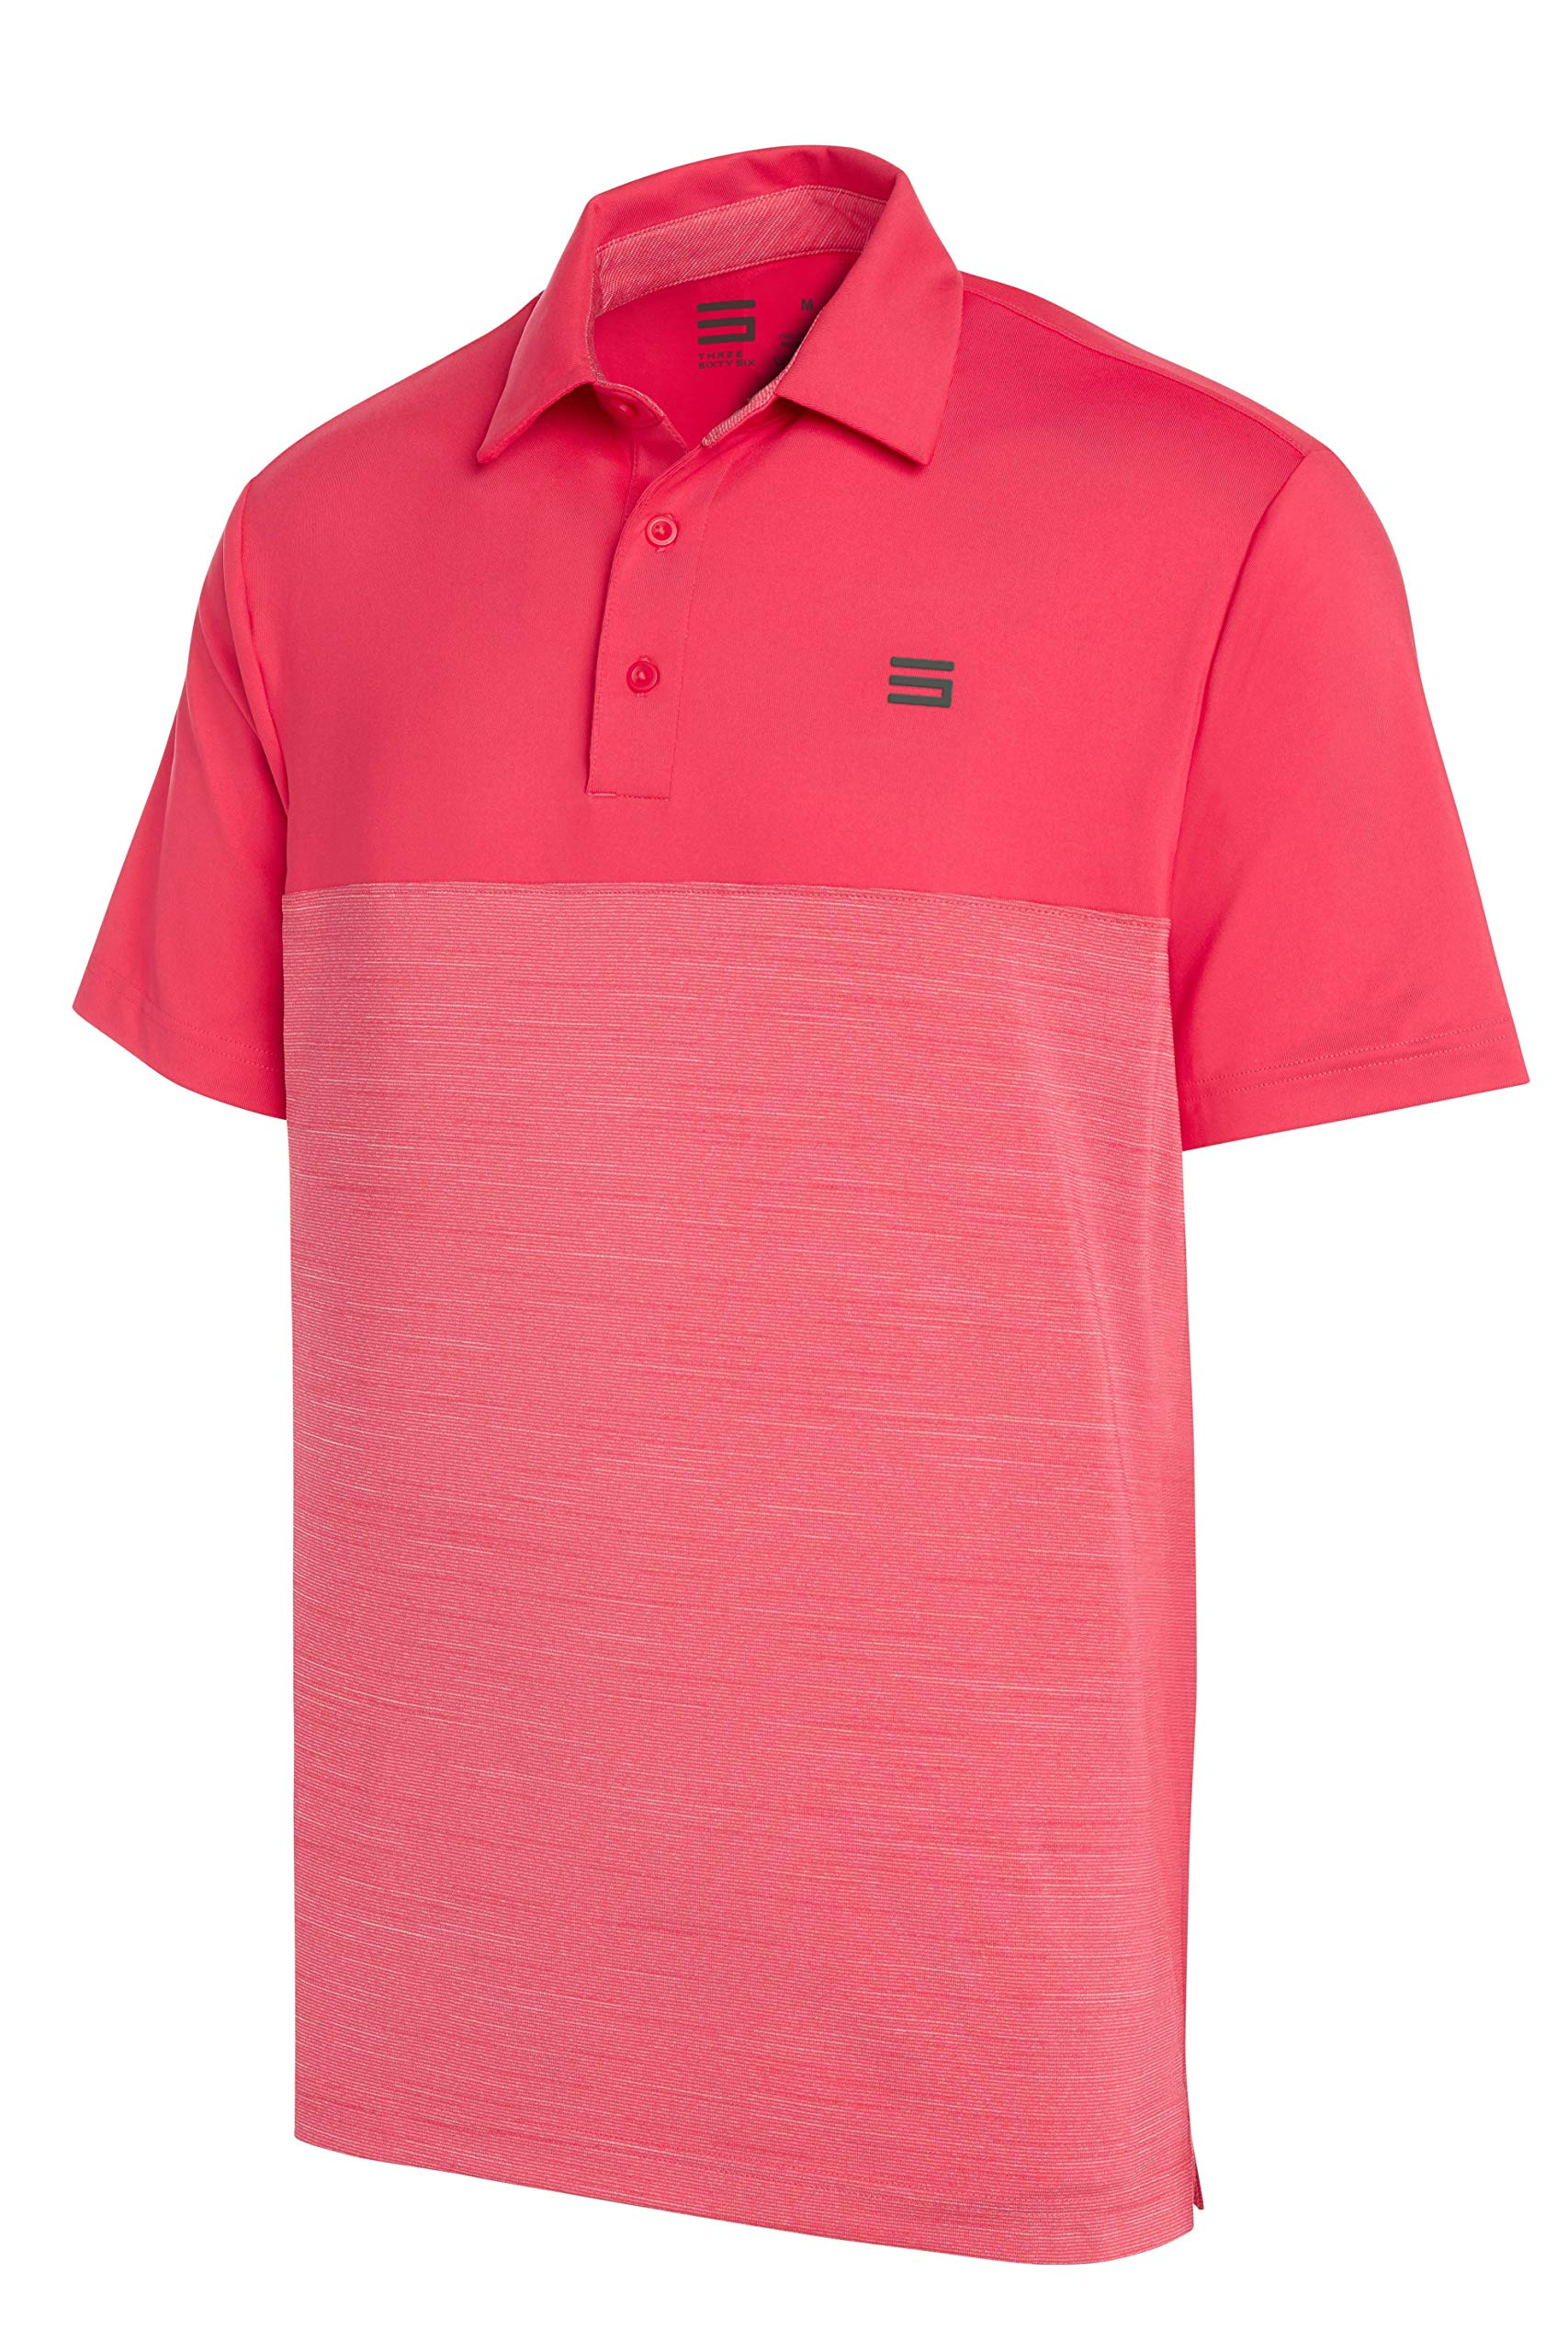 Three Sixty Six Dri-Fit Golf Shirts for Men